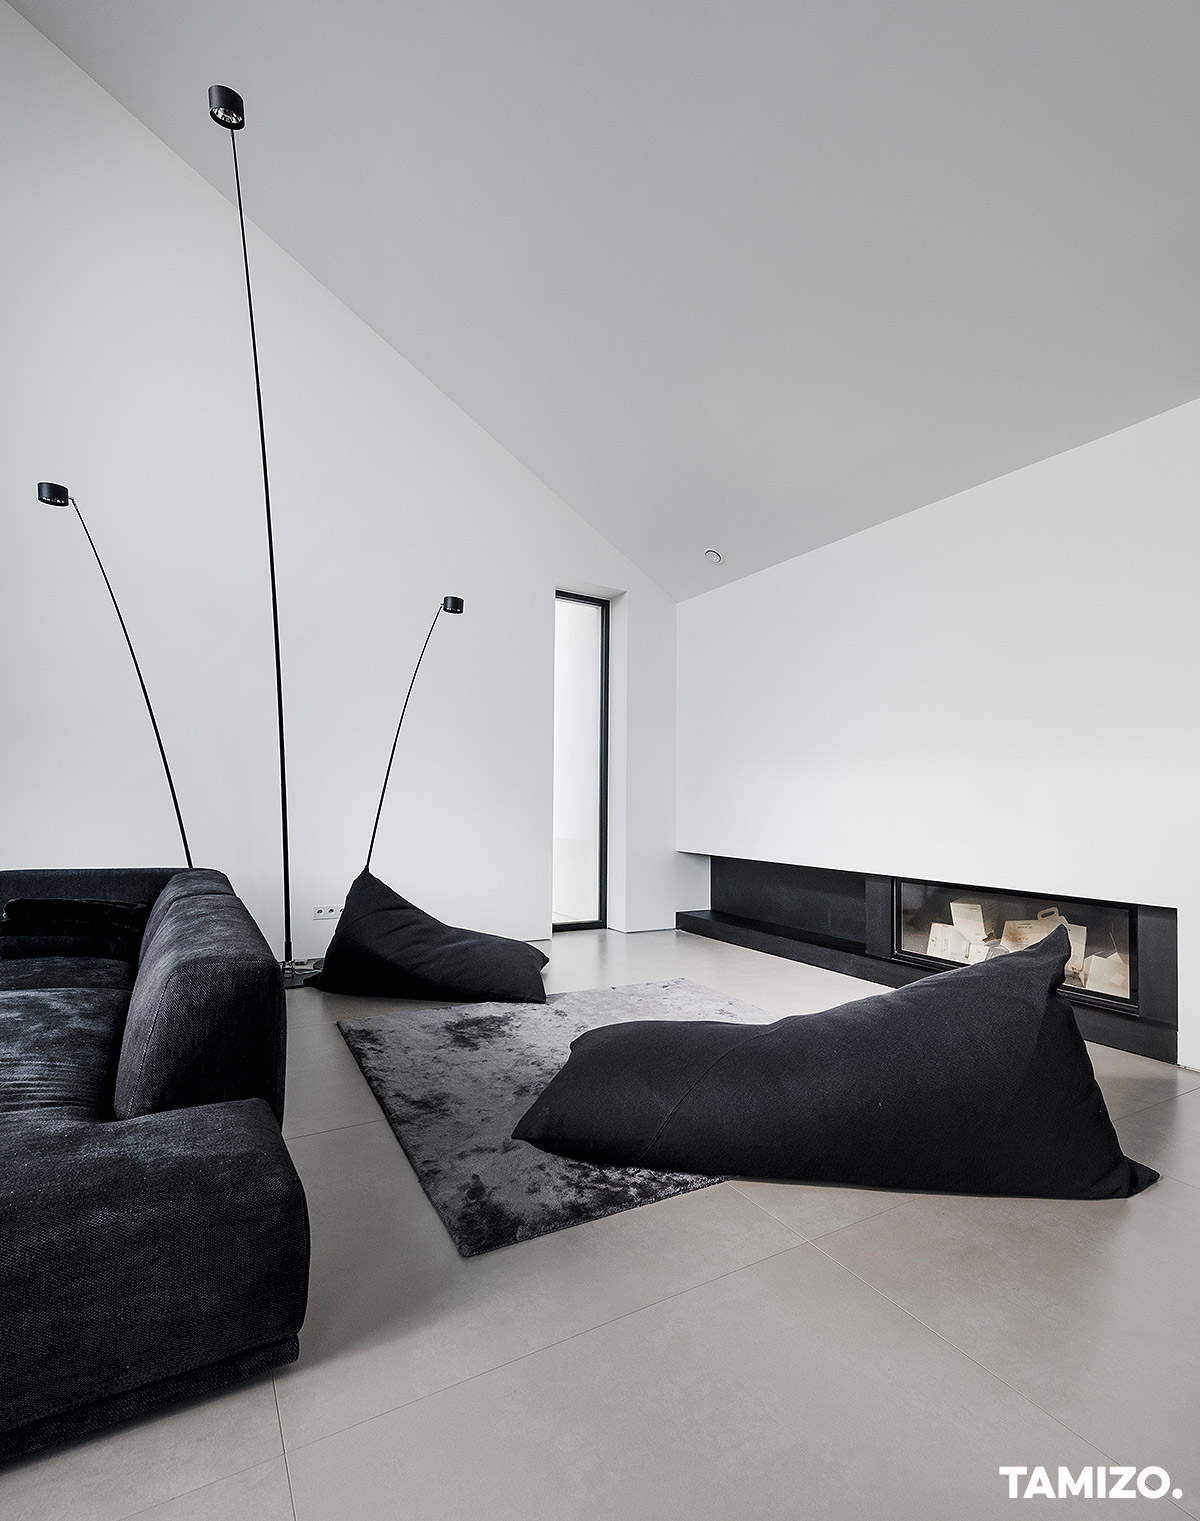 003_tamizo_architects_interior_house_realization_warsaw_poland_09